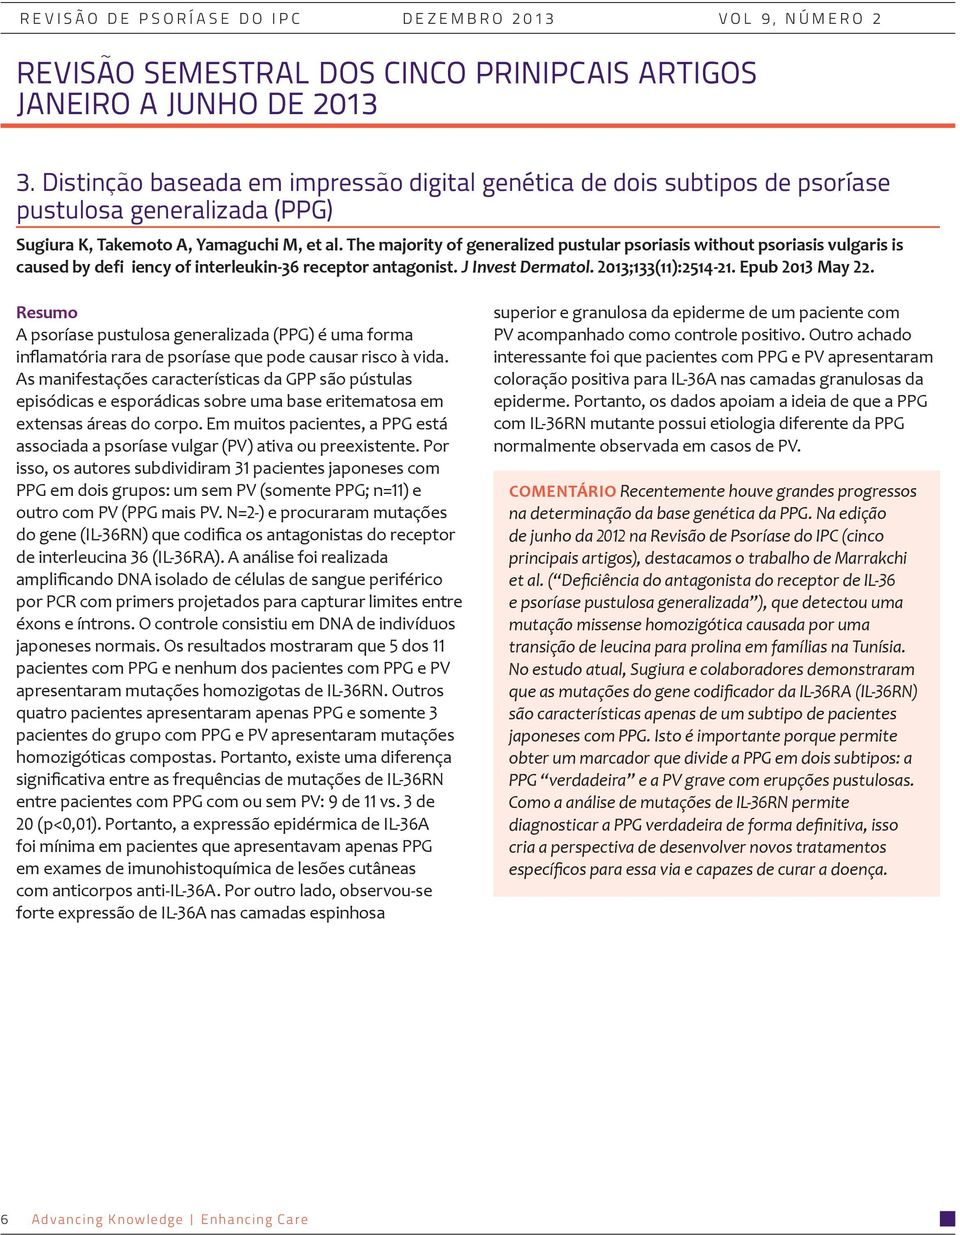 The majority of generalized pustular psoriasis without psoriasis vulgaris is caused by defi iency of interleukin-36 receptor antagonist. J Invest Dermatol. 2013;133(11):2514-21. Epub 2013 May 22.